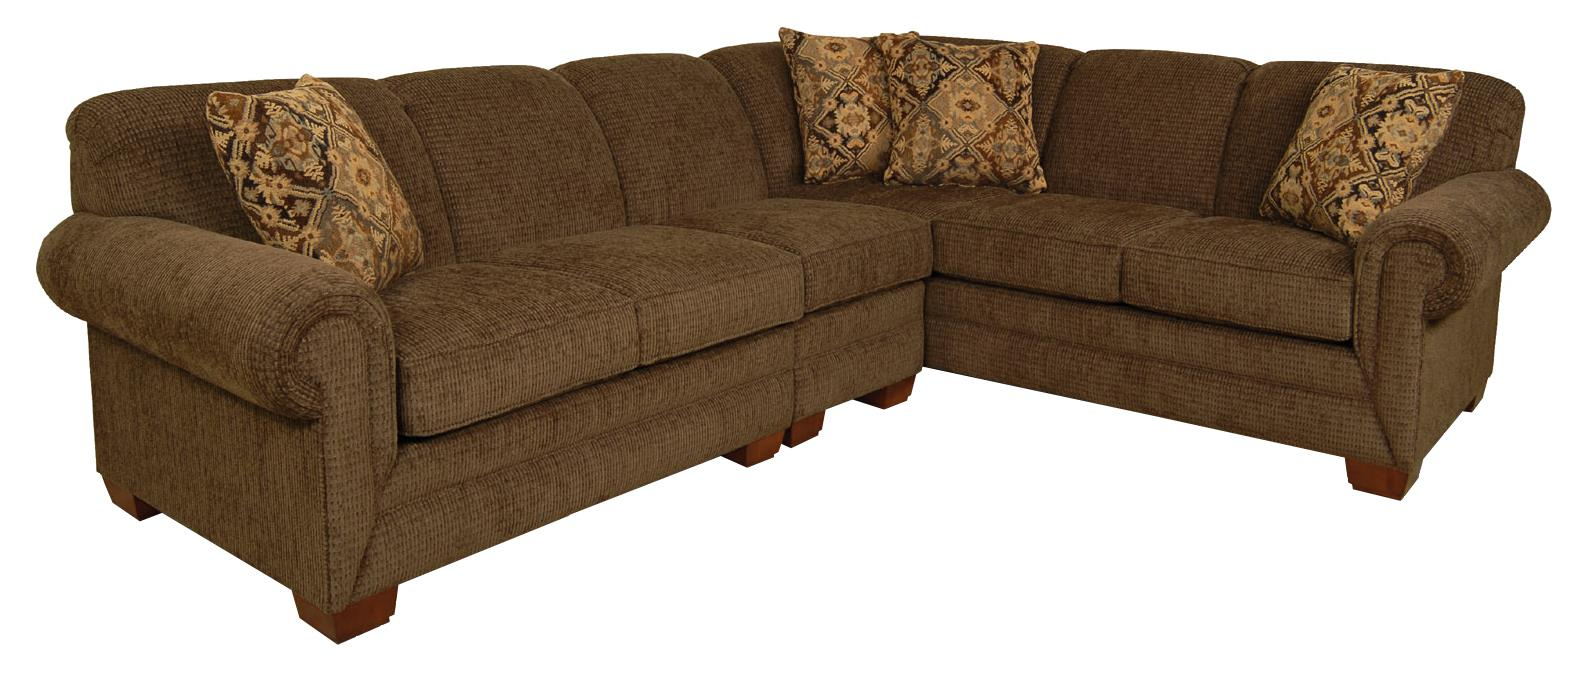 England Monroe Five Seat Sectional Sofa - Item Number: 4130-28+39+61-5733